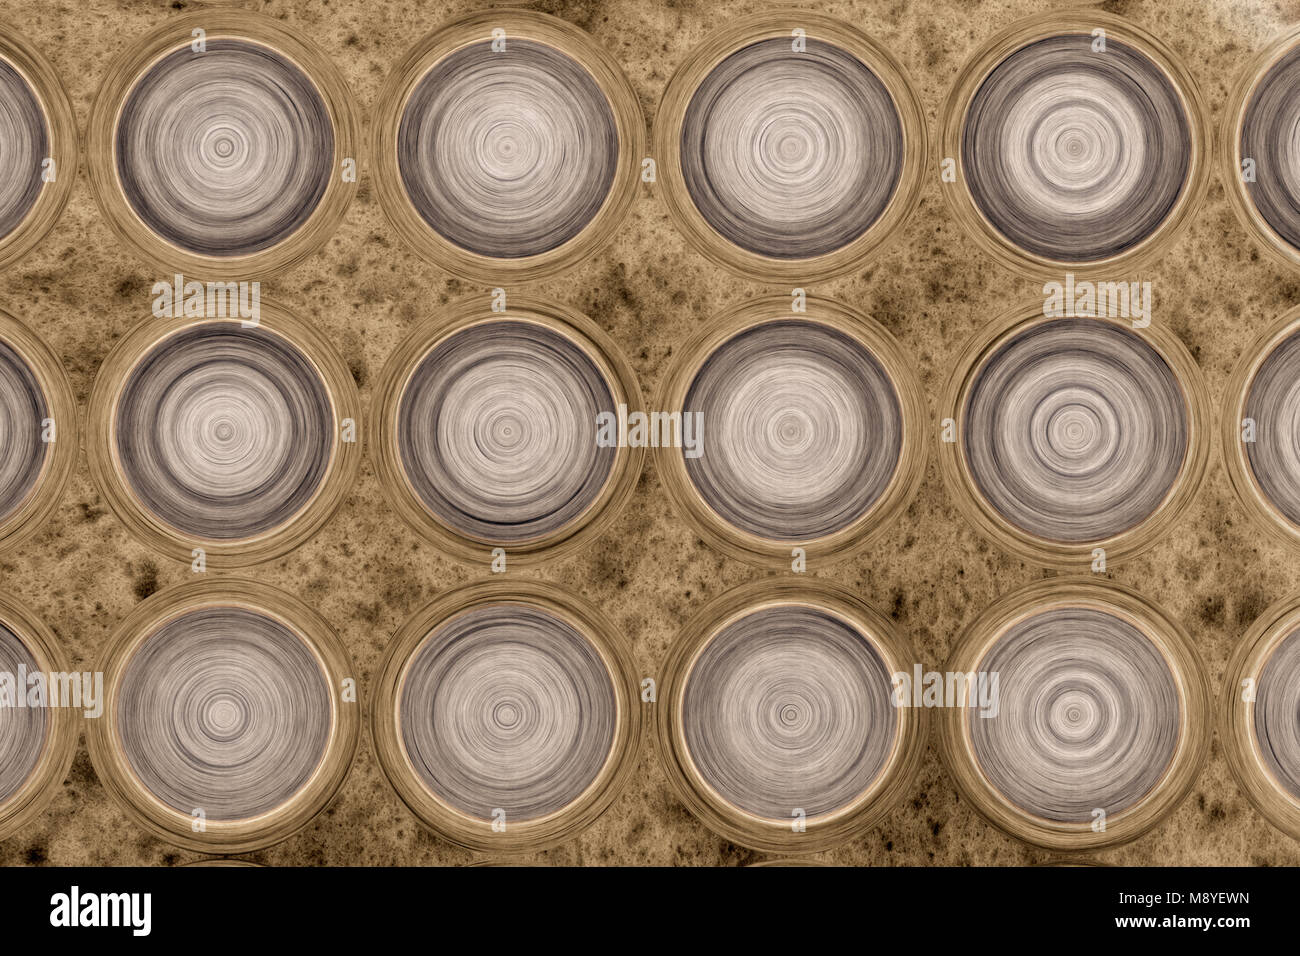 Parametric grid of generated wooden rings. Abstract background. 2d illustration. - Stock Image